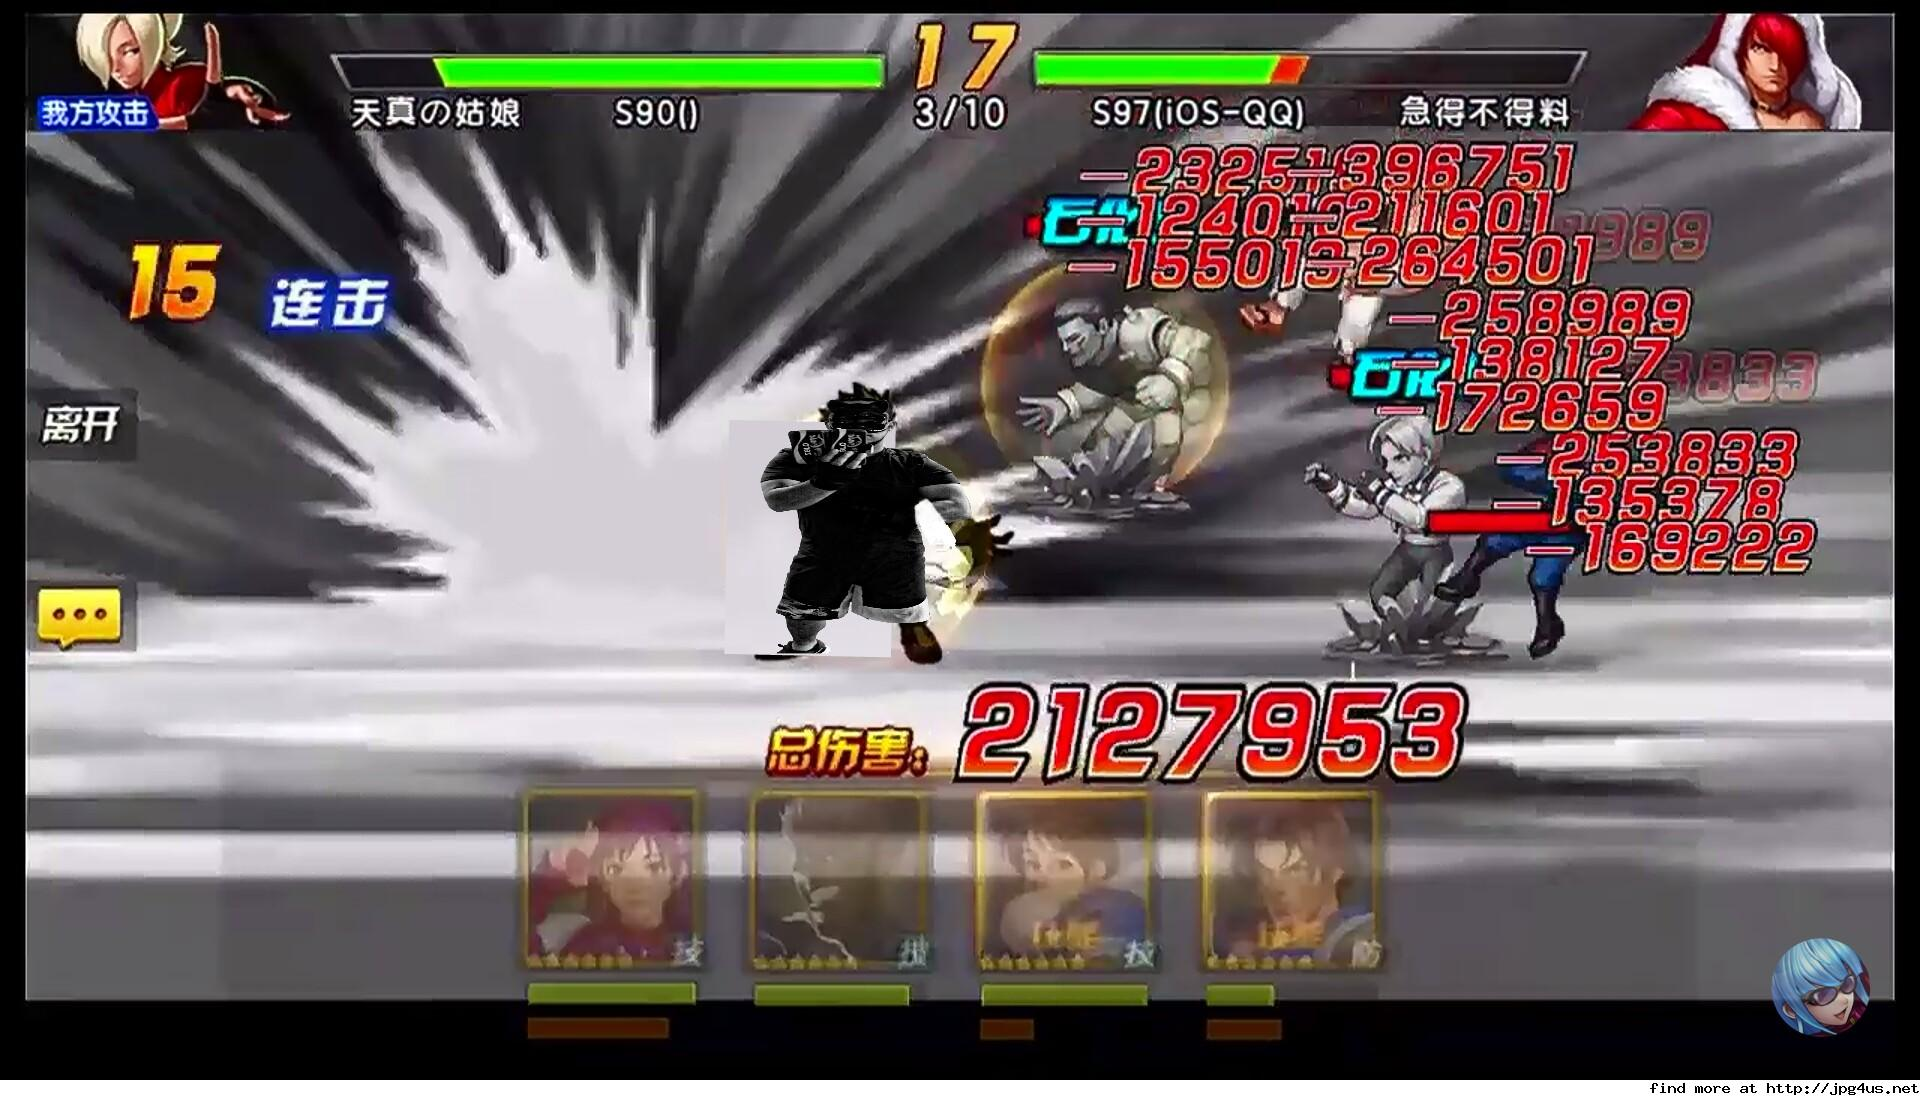 【KOF】THE KING OF FIGHTERS 98 ULTIMATE MATCH Online 痛いユーザー晒しスレ part16 ->画像>76枚